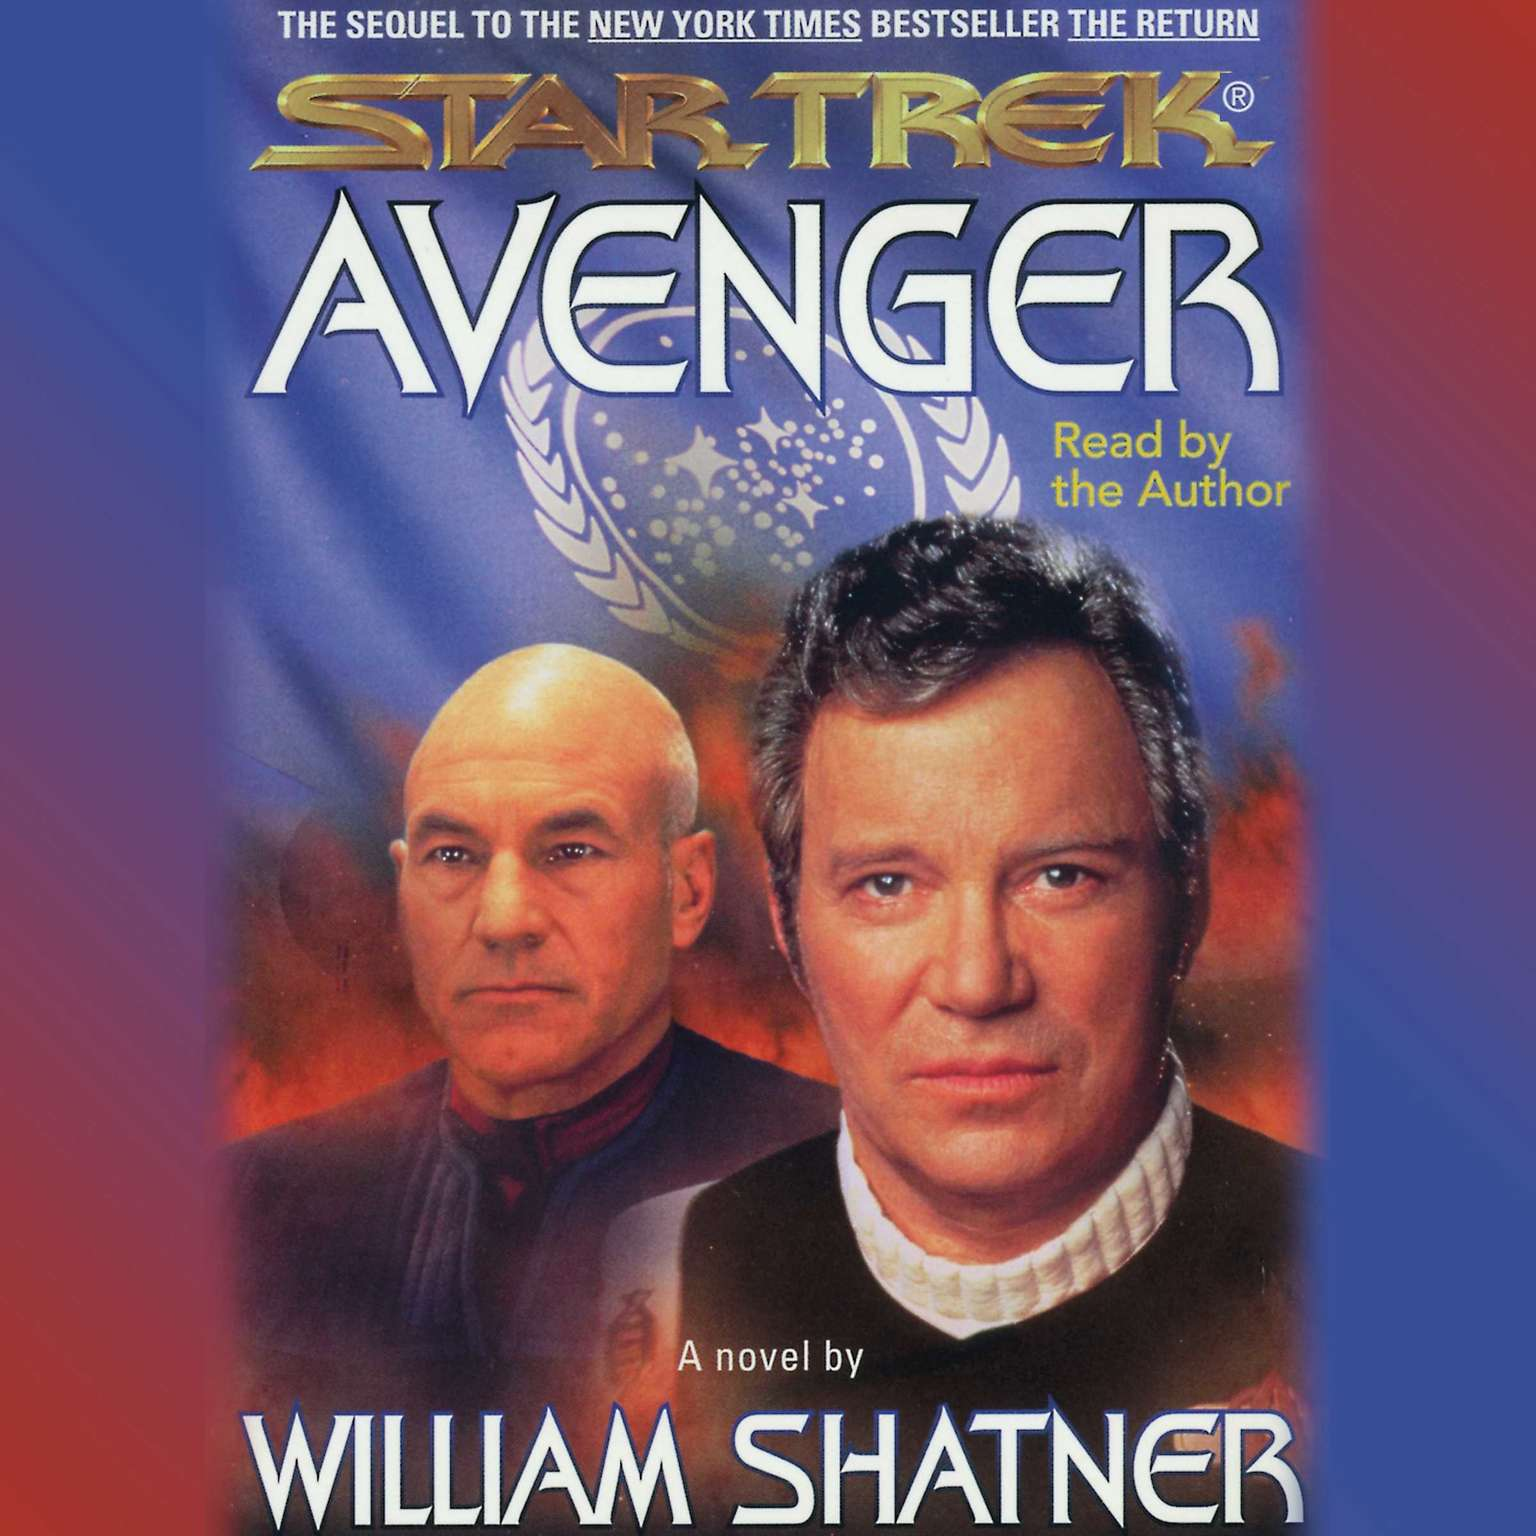 Printable Star Trek: Avenger Audiobook Cover Art